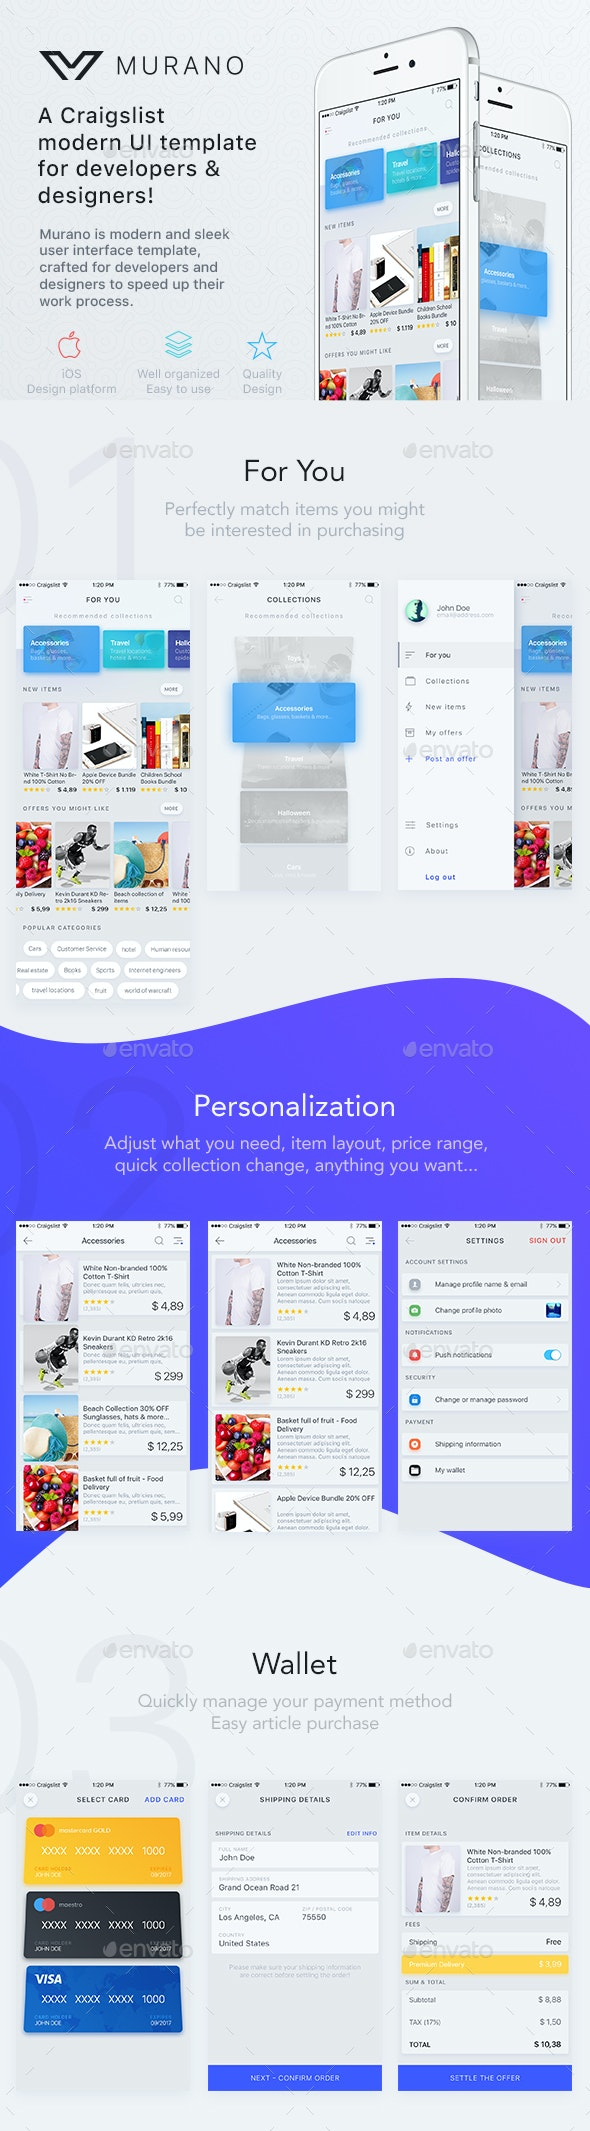 Murano - A Craigslist App For iOS - User Interfaces Web Elements